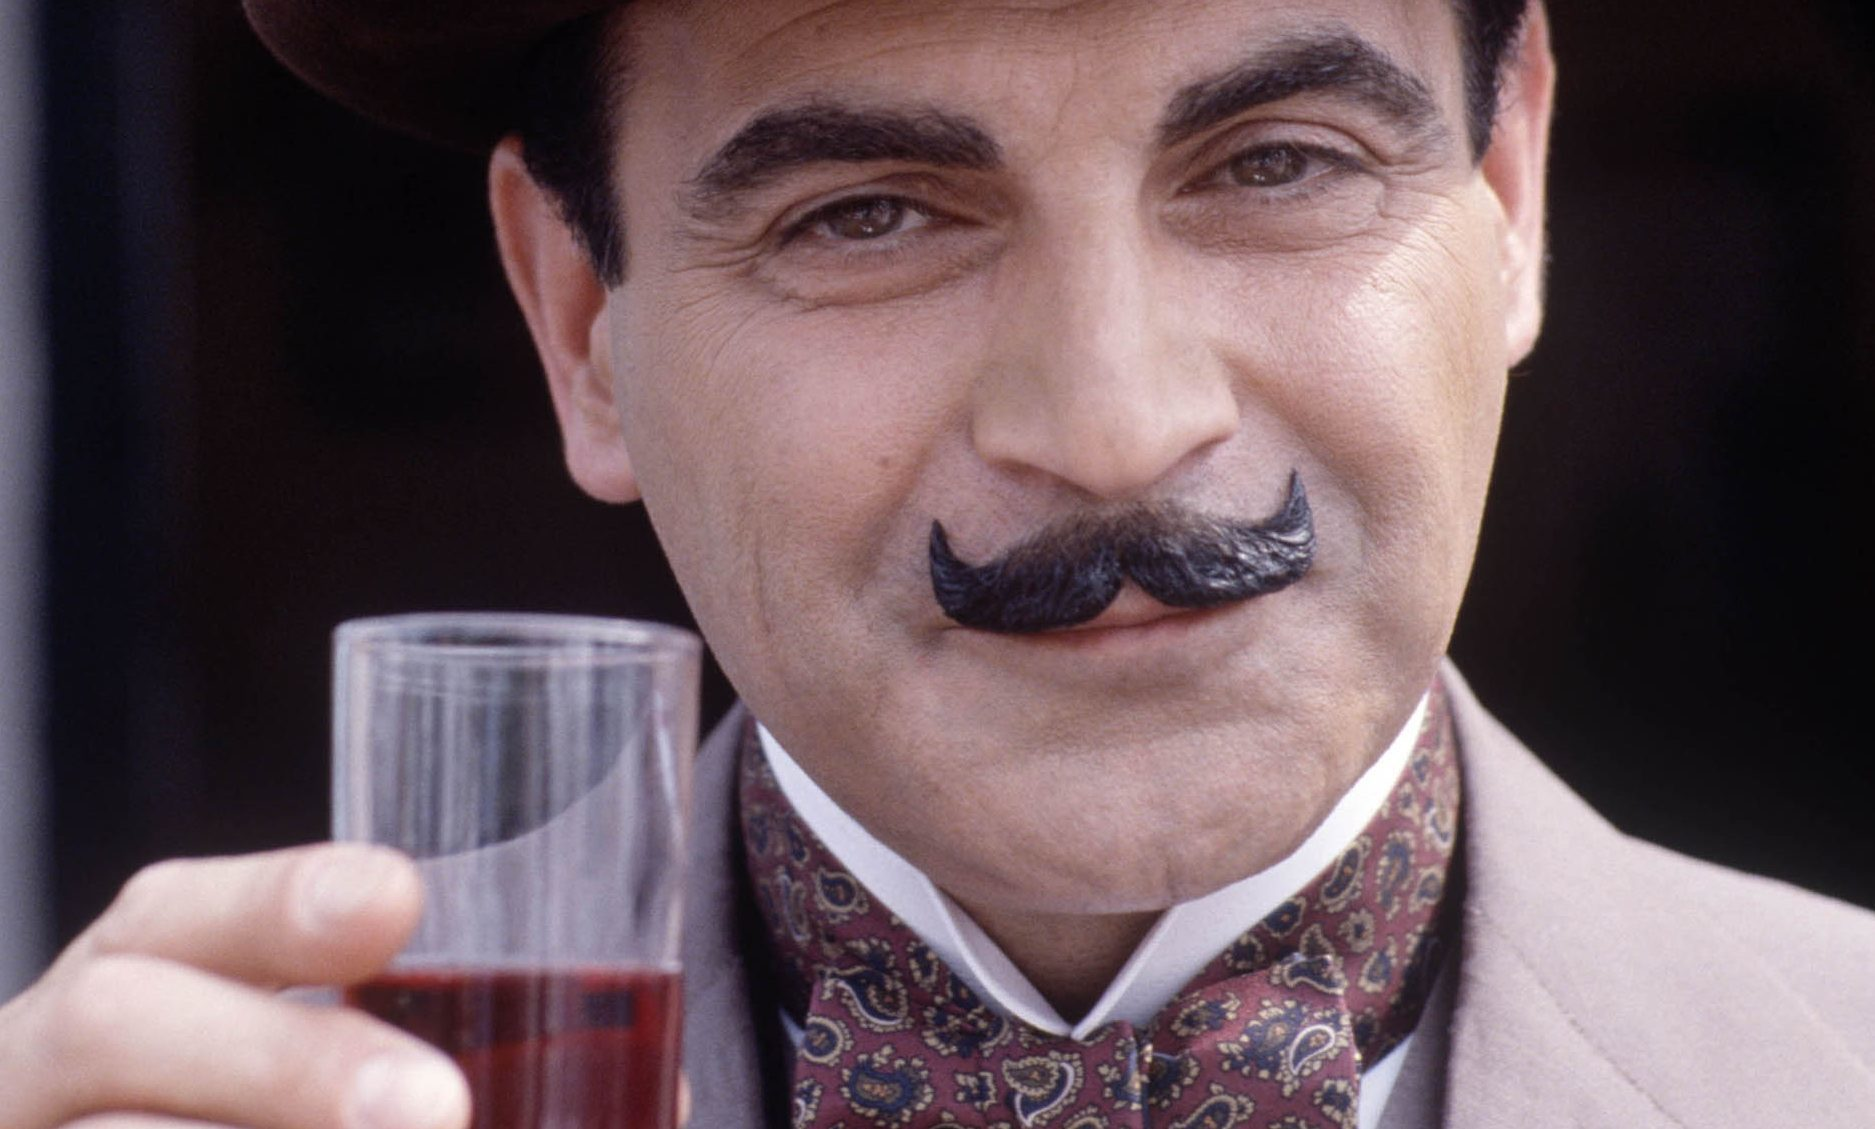 Poirot knew how to travel in style.